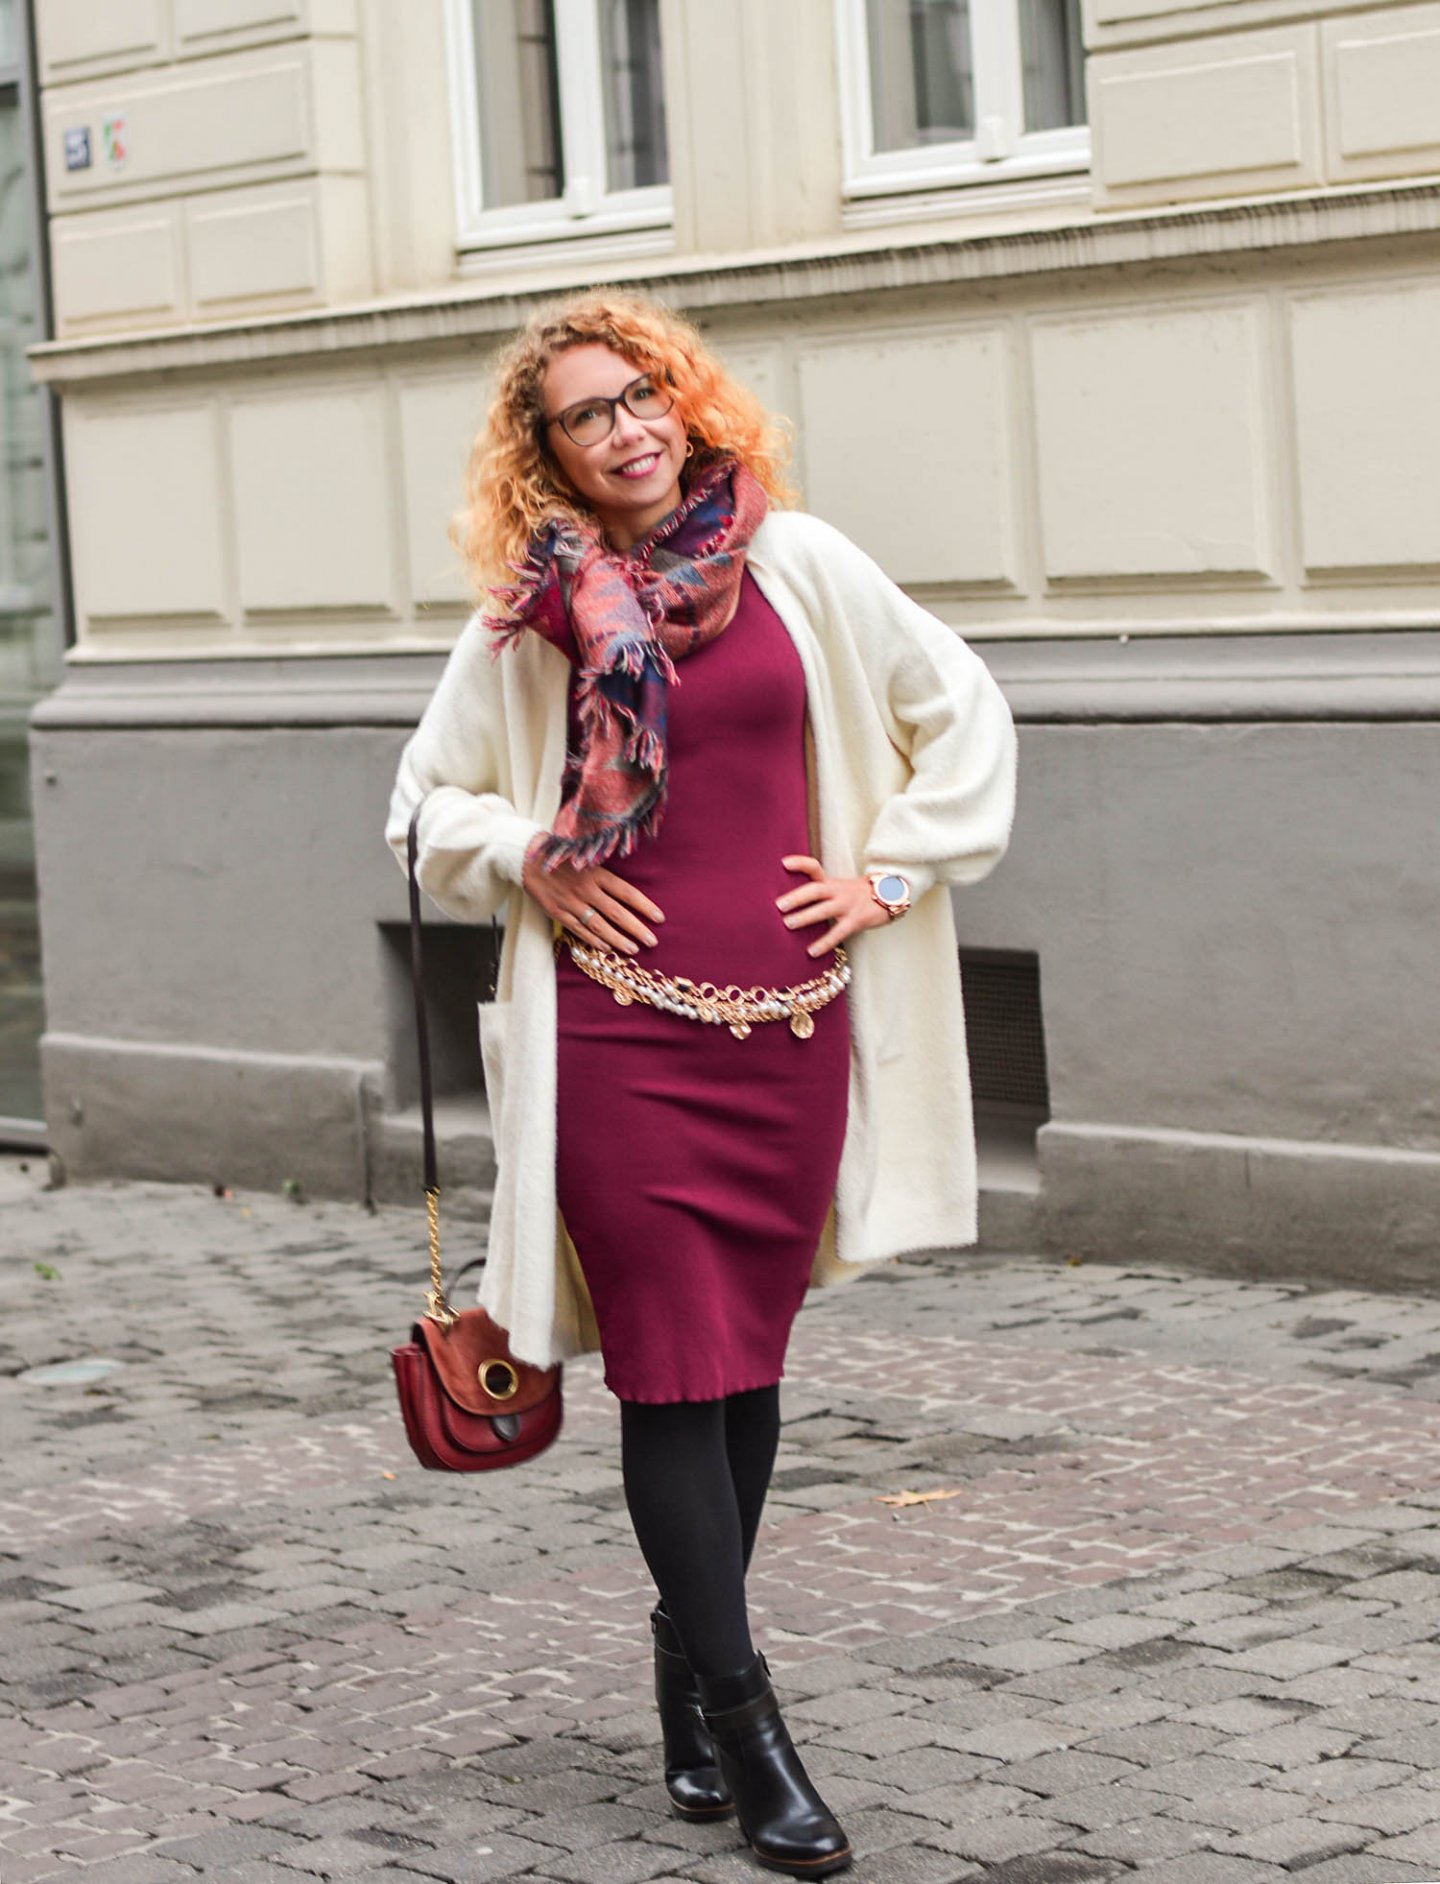 Chain-Belt-White-Cardigan-Burgundy-Dress-kationette-fashionblogger-outfit